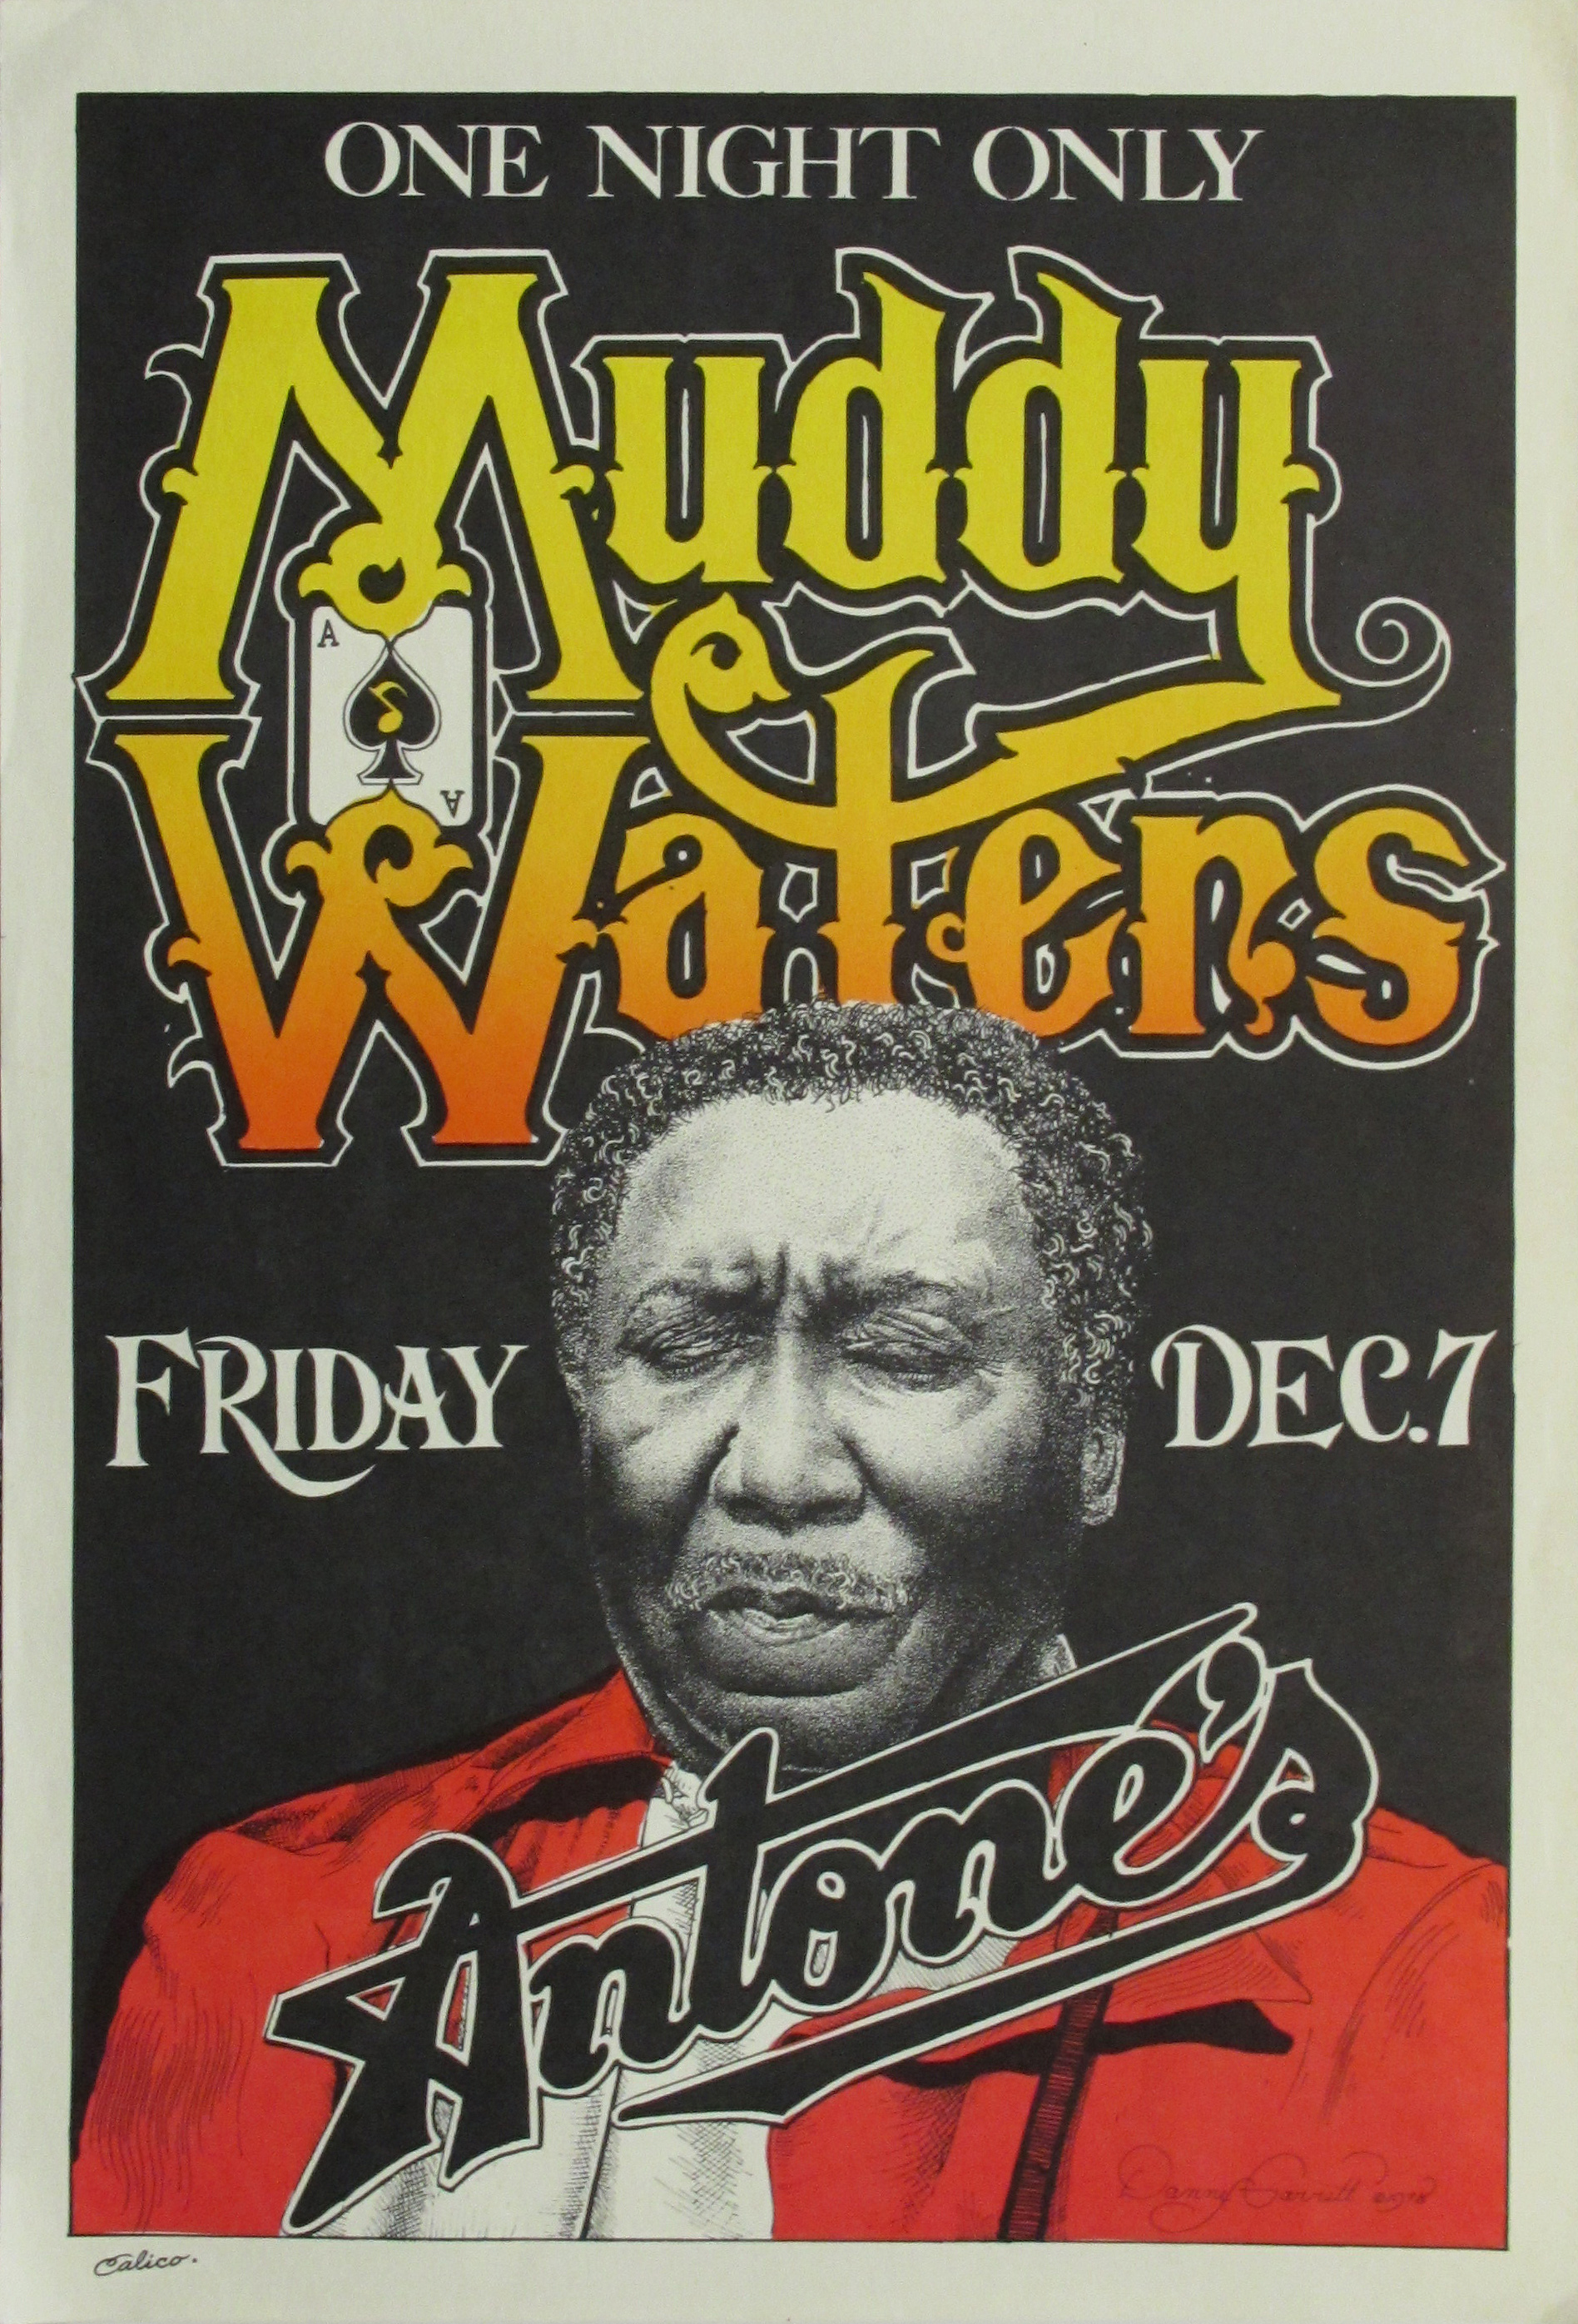 Muddy Waters Original Concert Poster | Limited Runs